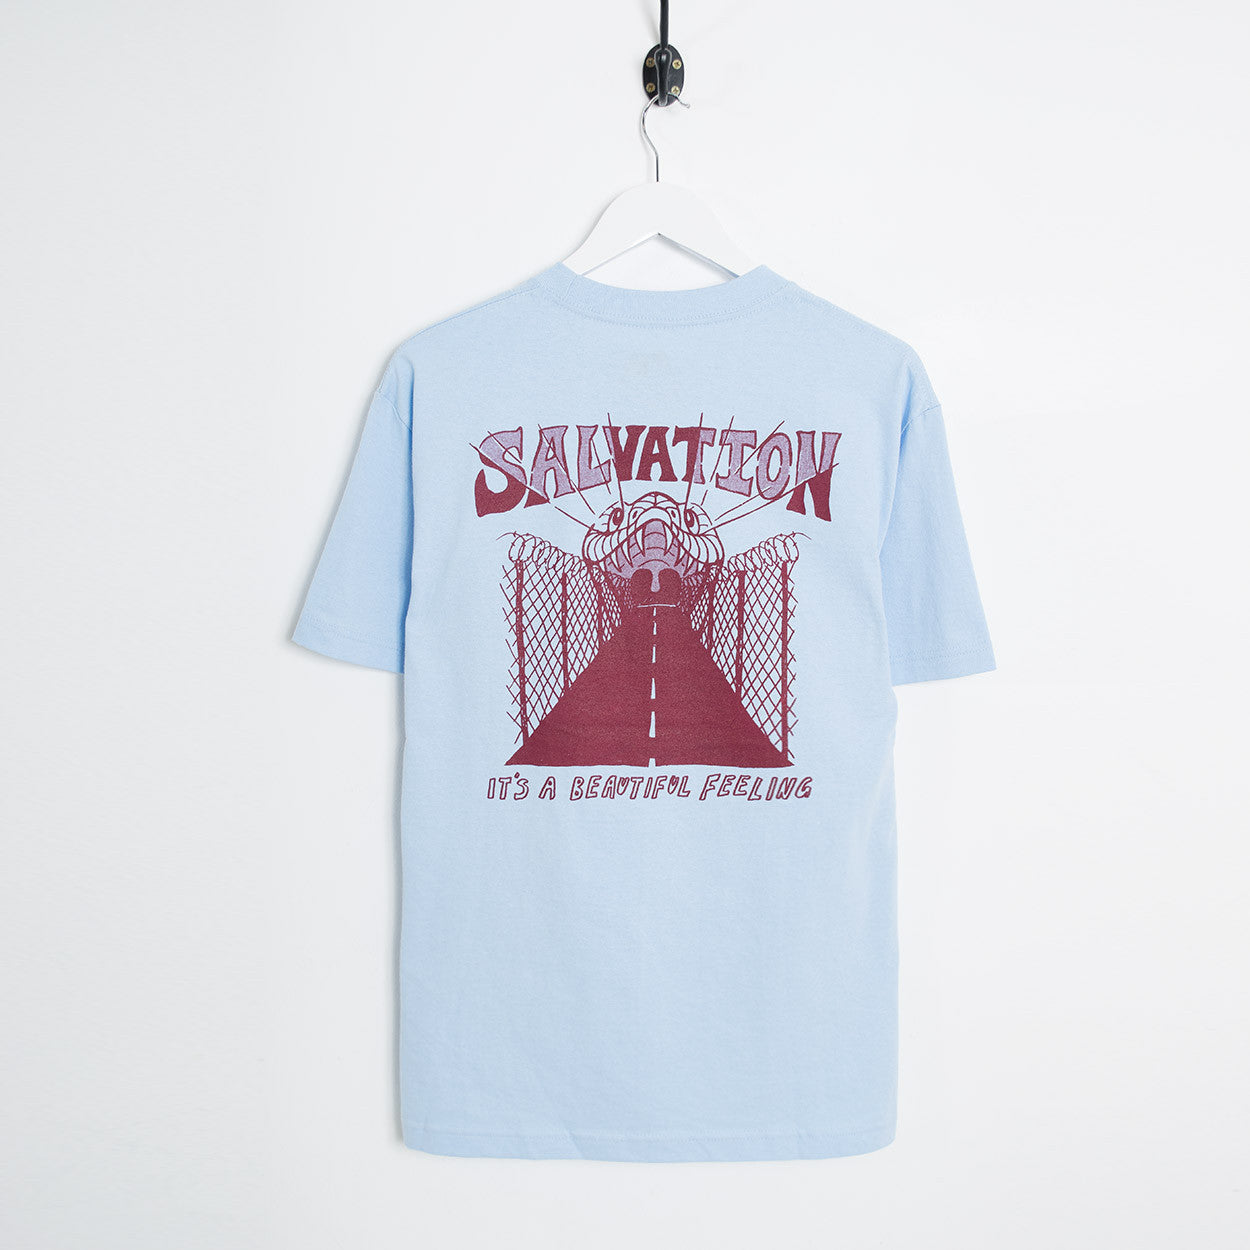 Come Sundown Salvation T-Shirt - Blue T-Shirt - CARTOCON